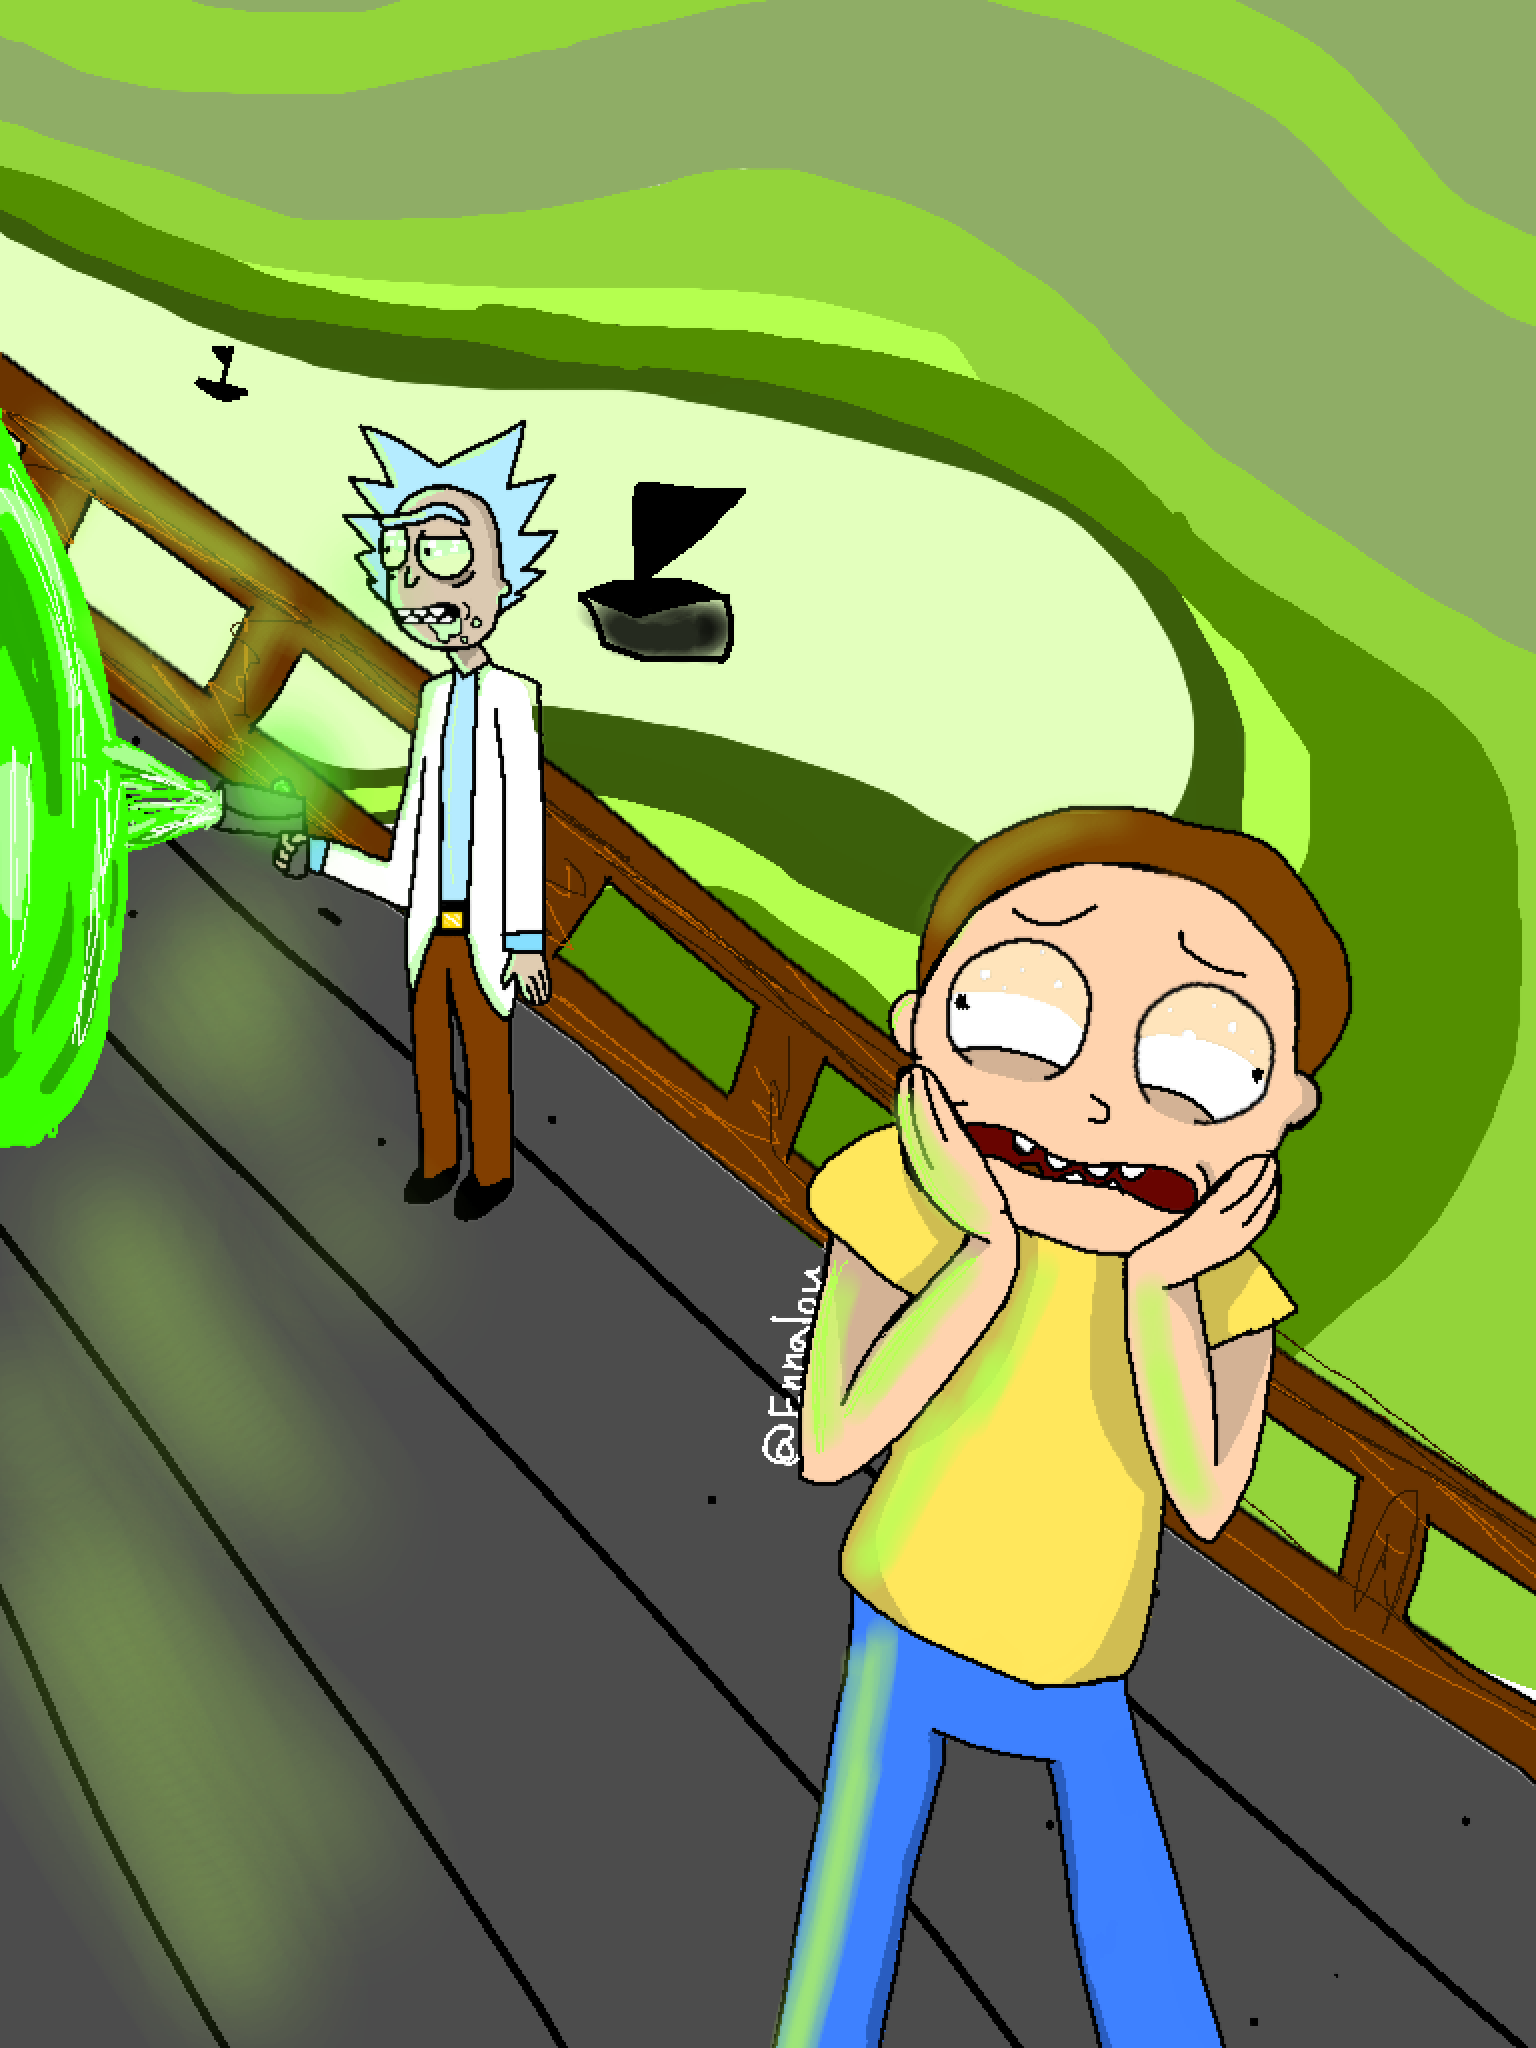 The screaming morty